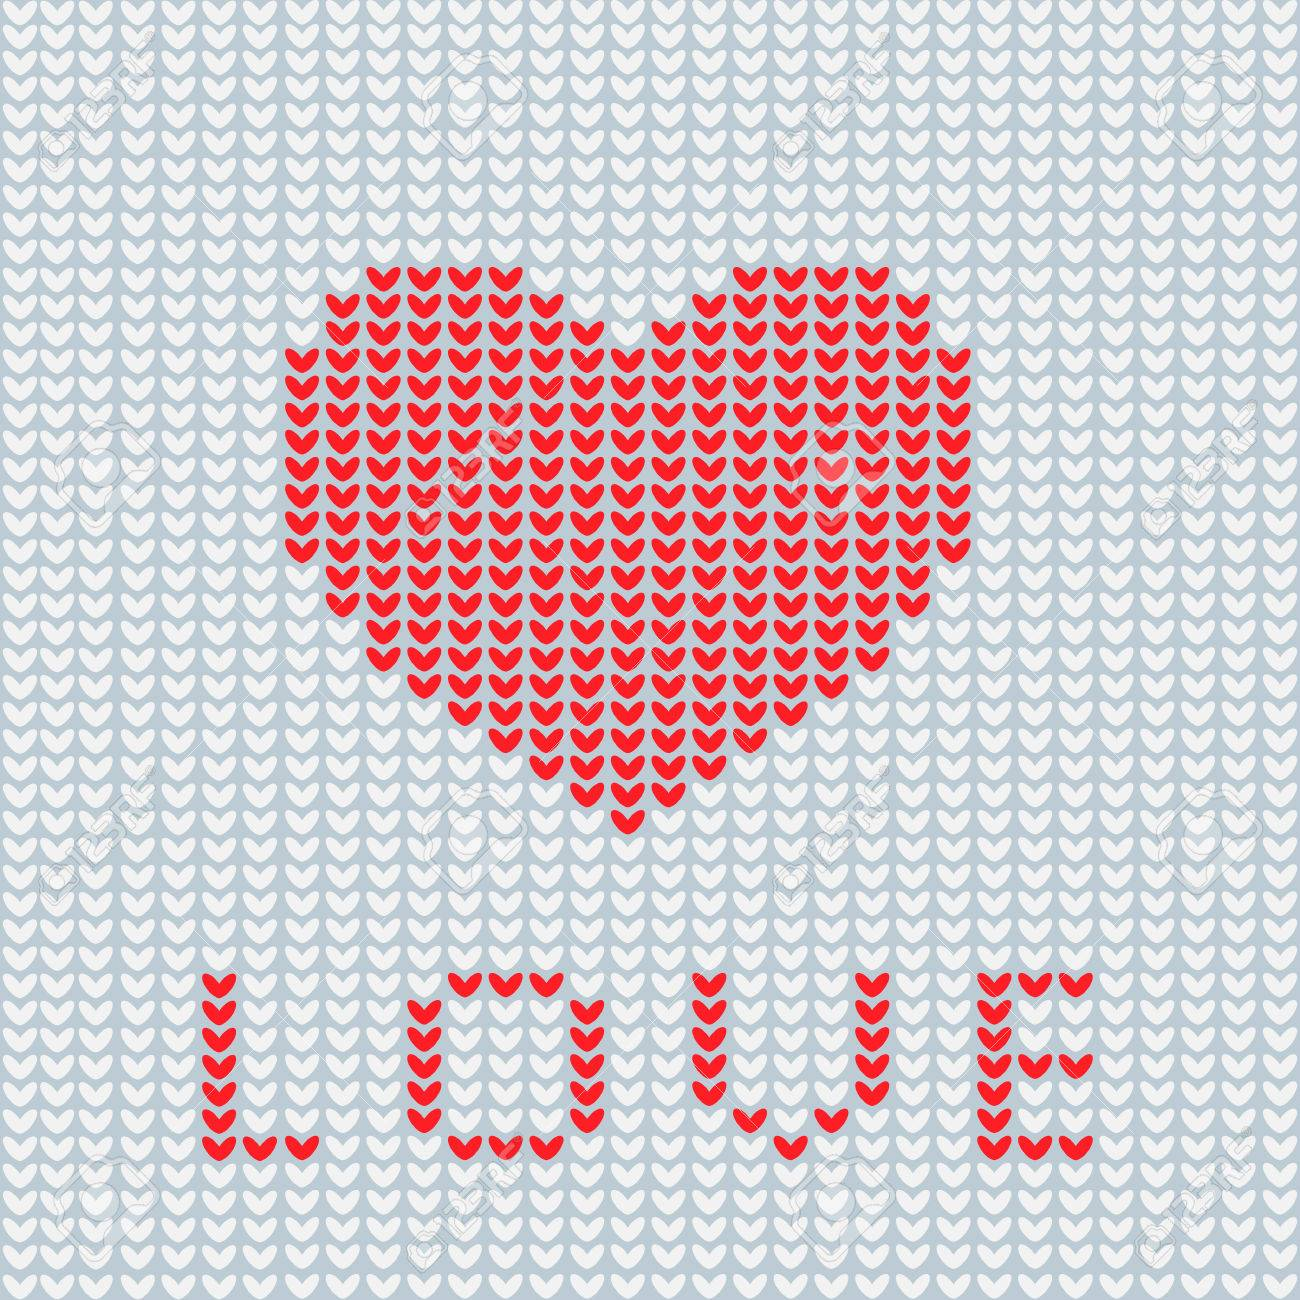 Knitting is love knitted heart symbol modern vector knitting knitting is love knitted heart symbol modern vector knitting pattern flat knitted heart bankloansurffo Image collections